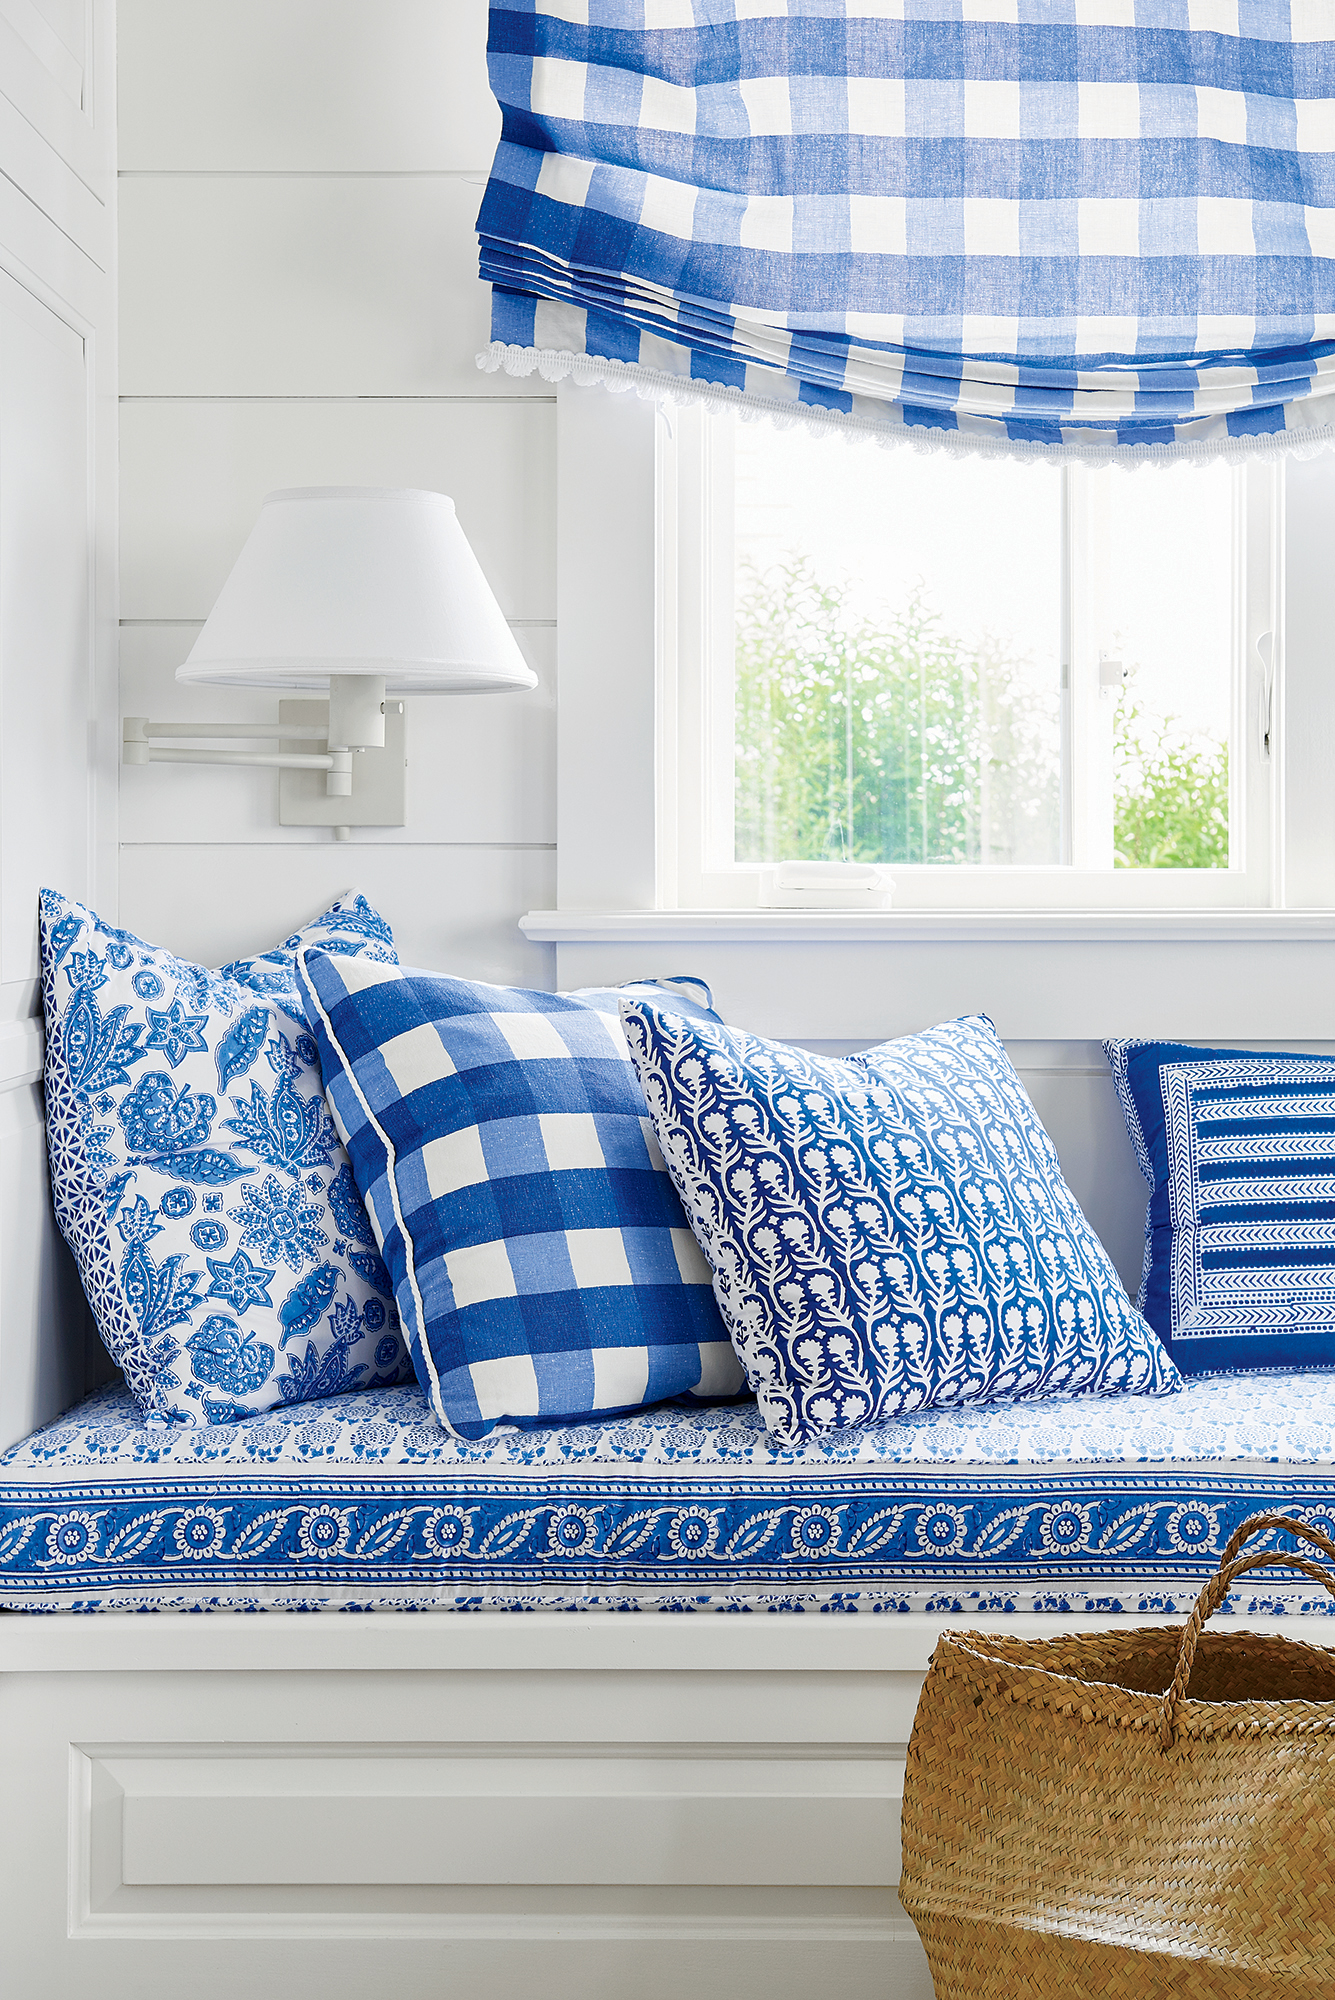 Blue and White Pillows on a Window Seat Designed by Mark D. Sikes